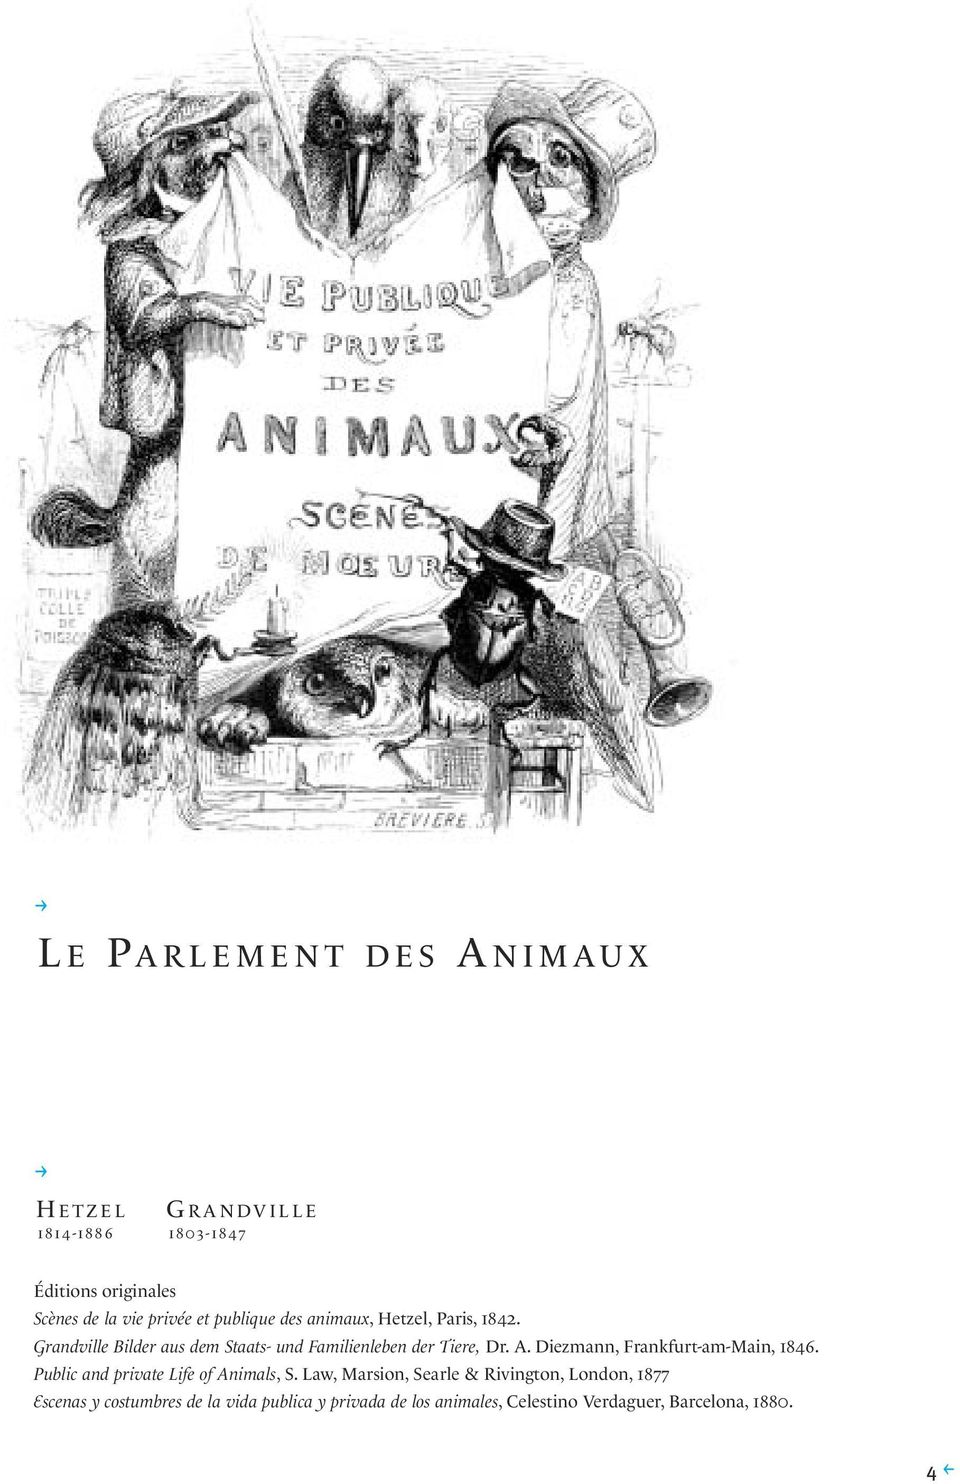 Diezmann, Frankfurt-am-Main, 1846. Public and private Life of Animals, S.